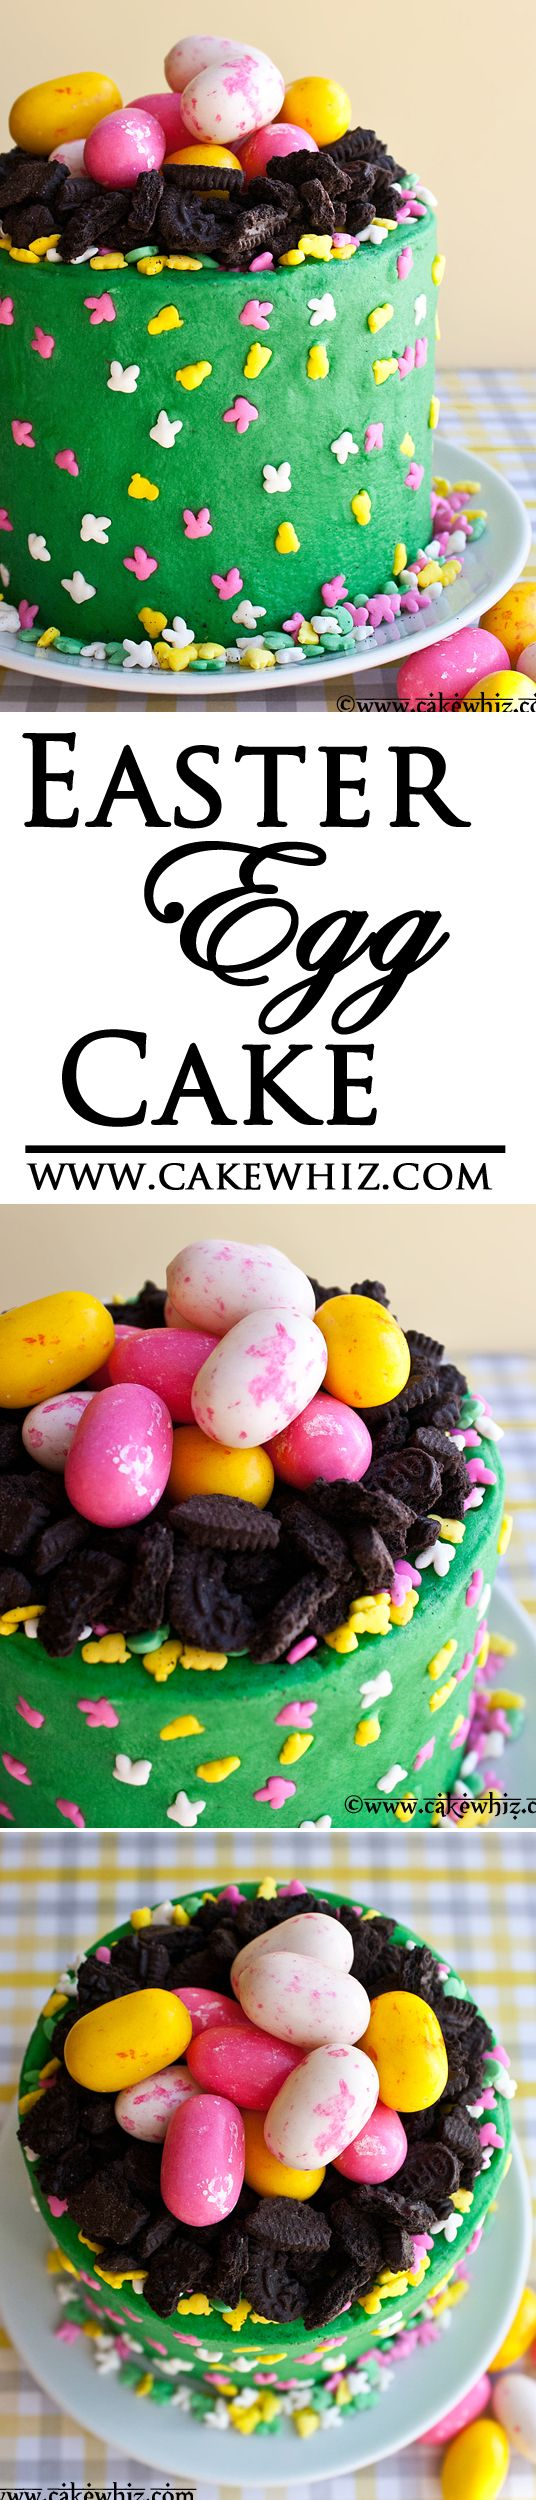 Mini EASTER EGG CAKE... so cute and colorful and very easy to make! Kids are gonna love this cake! From cakewhiz.com